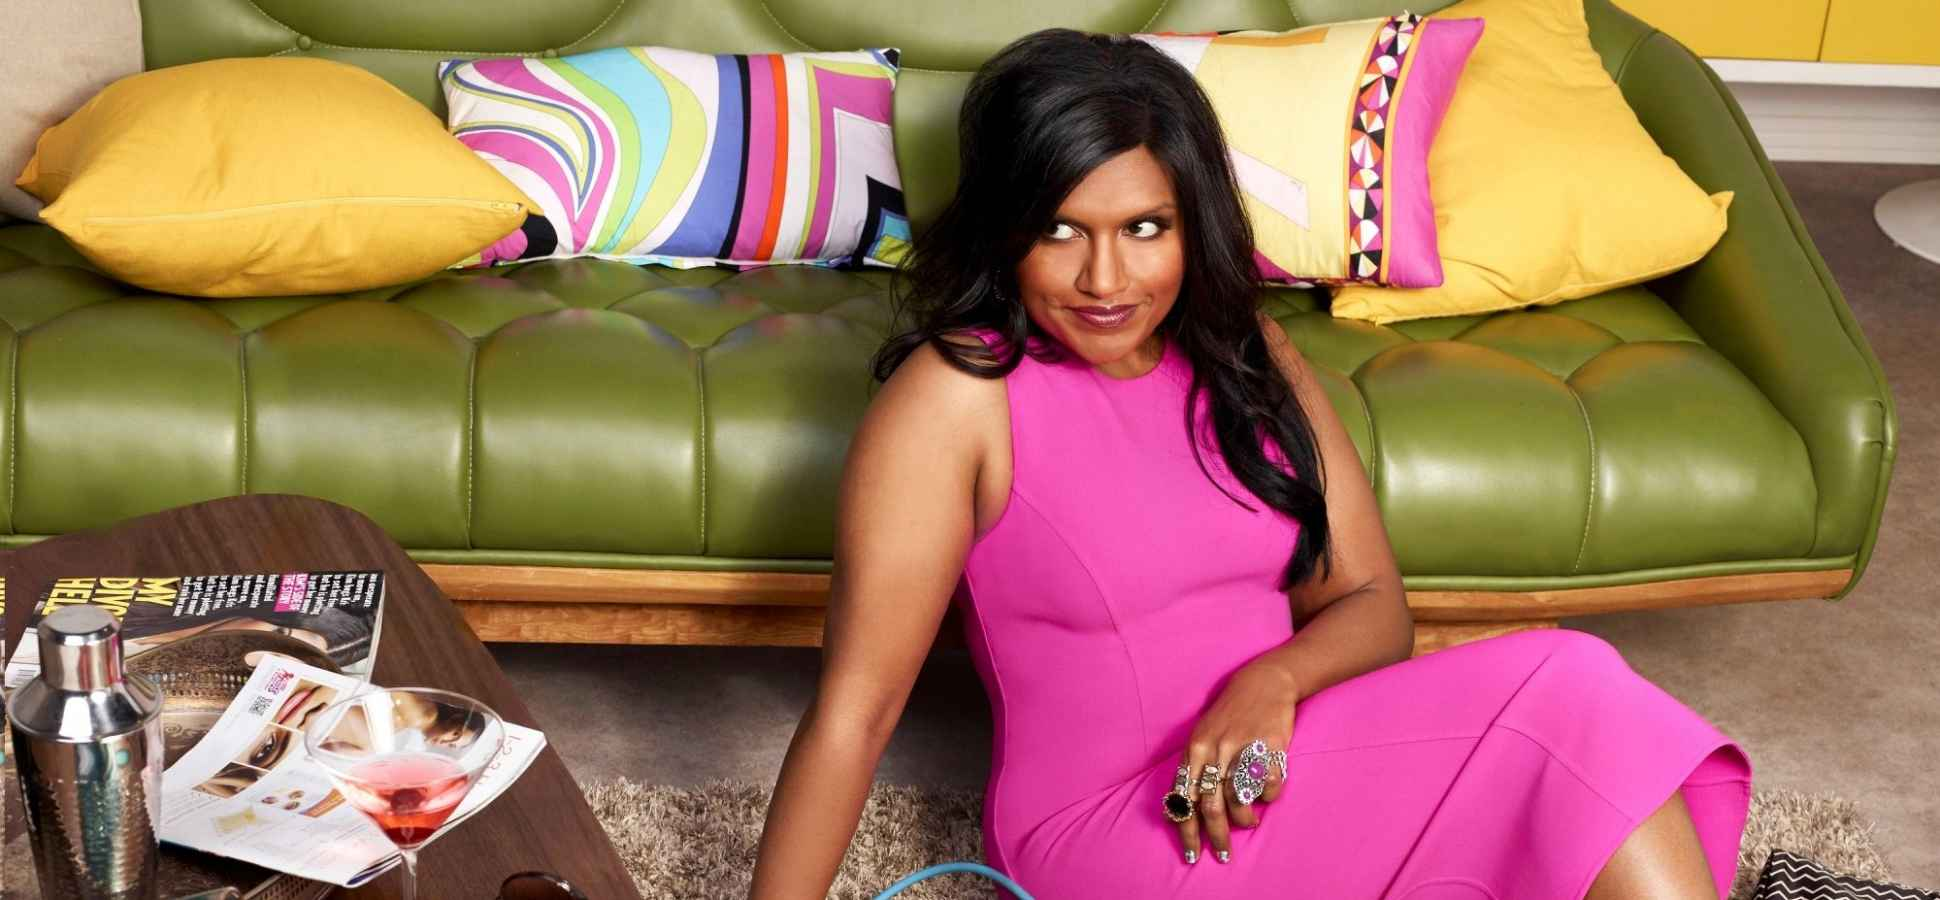 The Mindy Kaling Way of Building Real Confidence